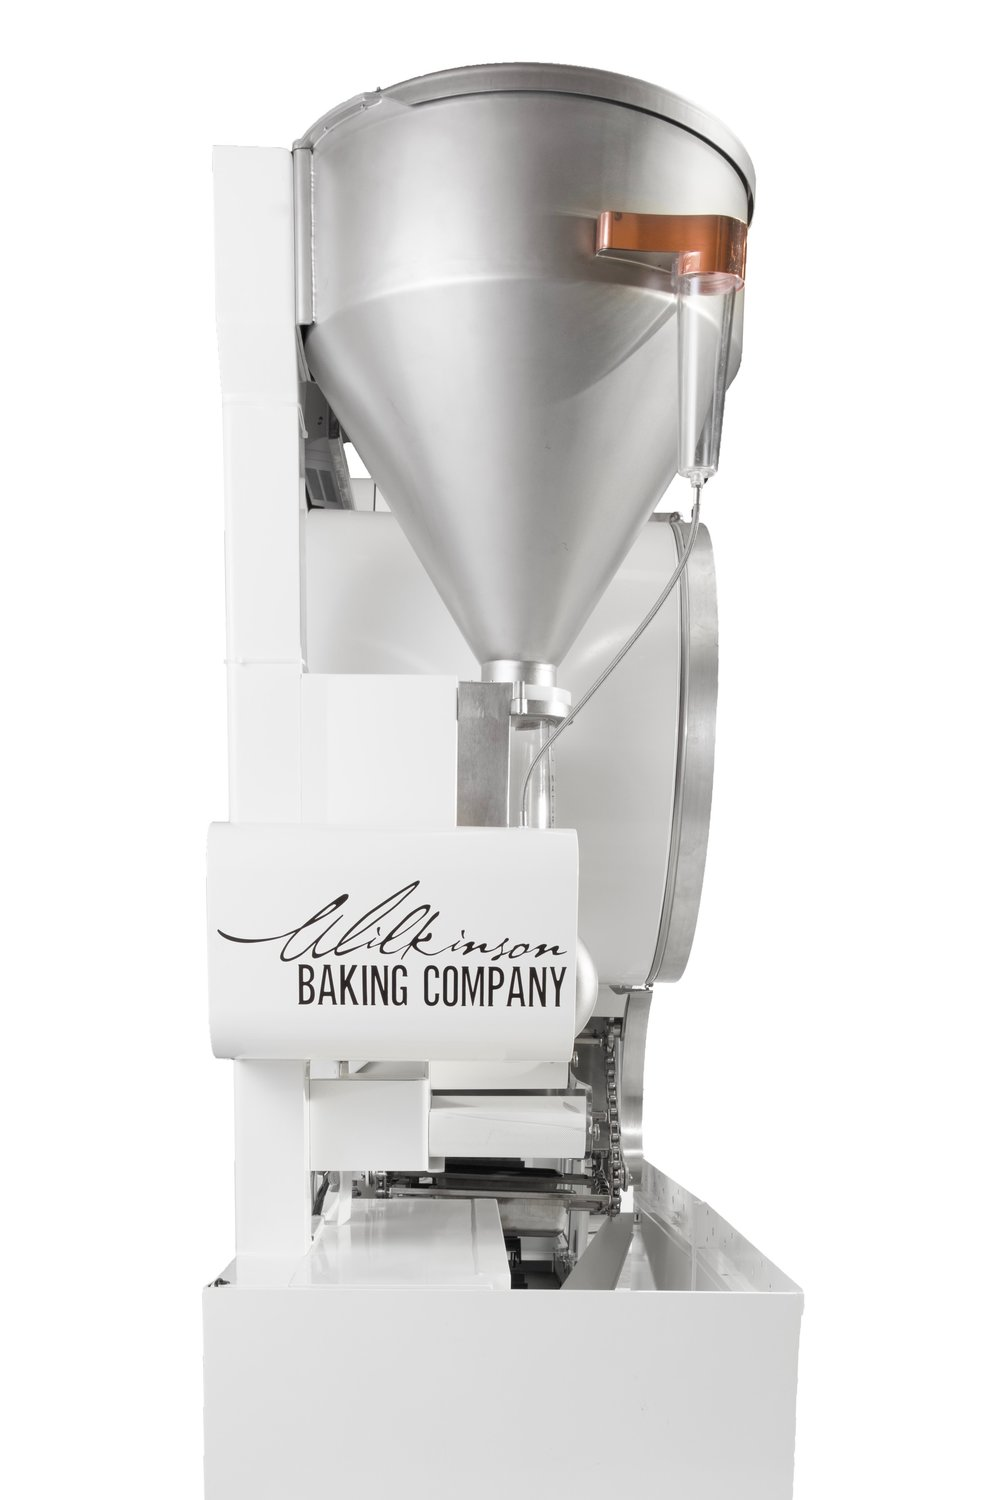 Wilkinson Baking Company Press Photo 6.jpg